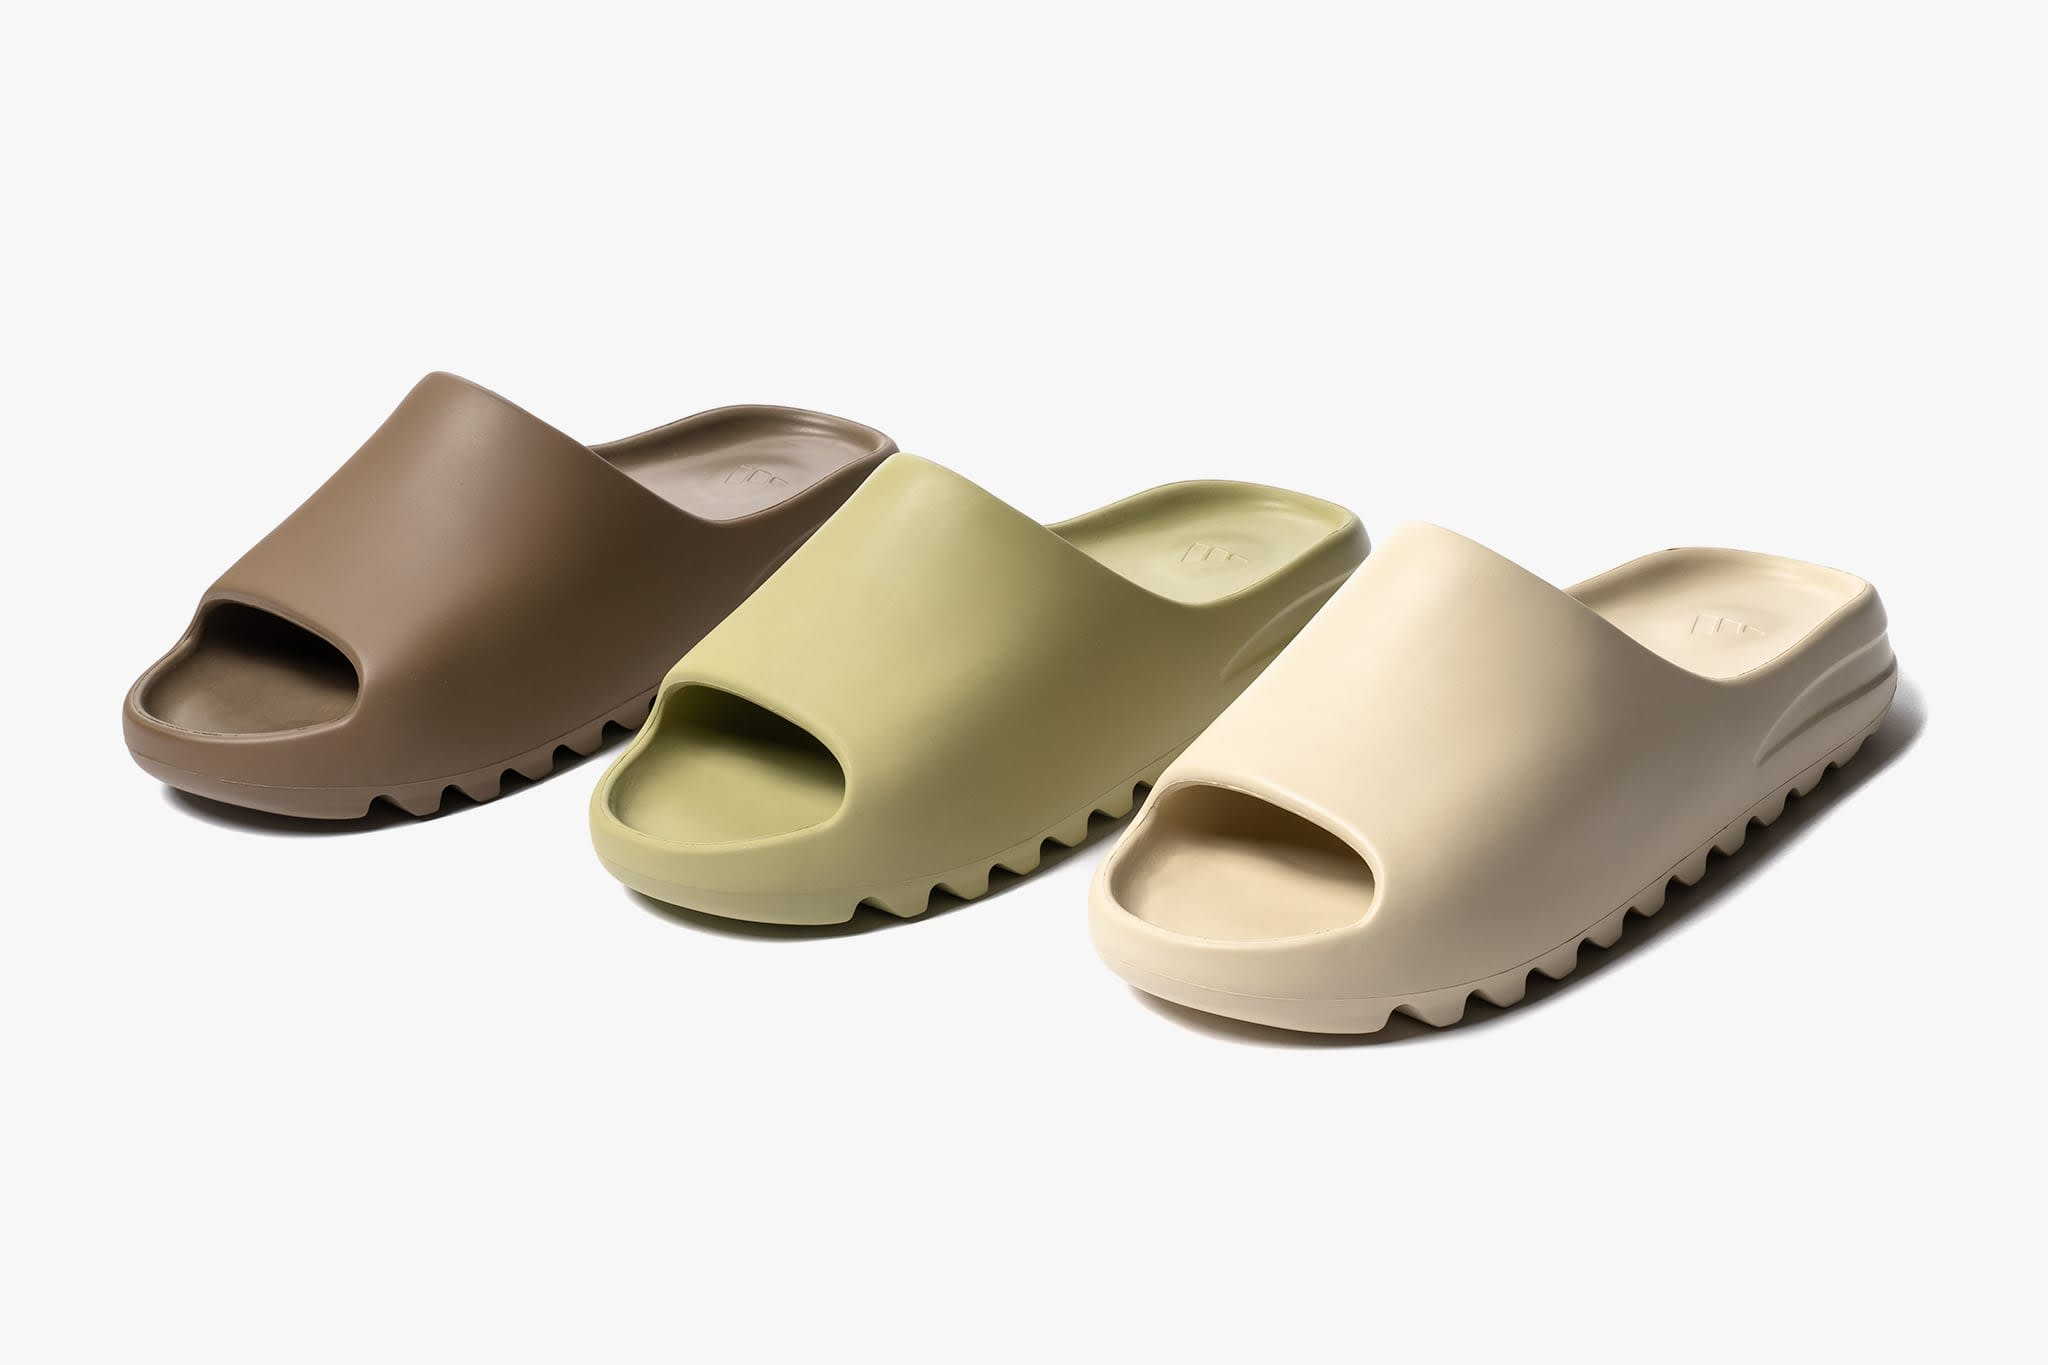 adidas Yeezy Slide   Now Available   HAVEN